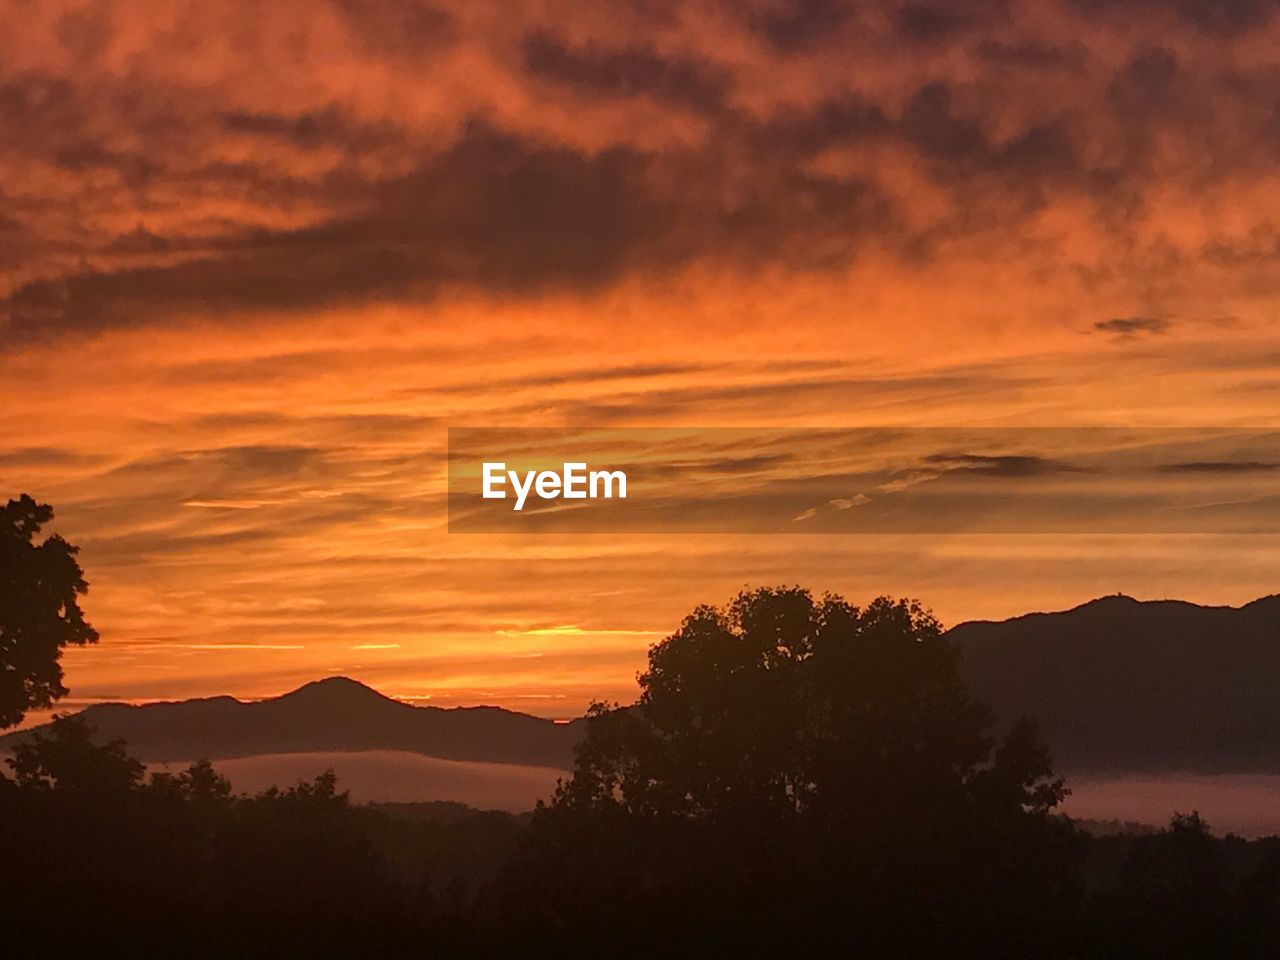 sunset, sky, beauty in nature, scenics - nature, tranquil scene, tranquility, cloud - sky, silhouette, orange color, mountain, tree, idyllic, plant, no people, nature, non-urban scene, mountain range, outdoors, environment, dramatic sky, romantic sky